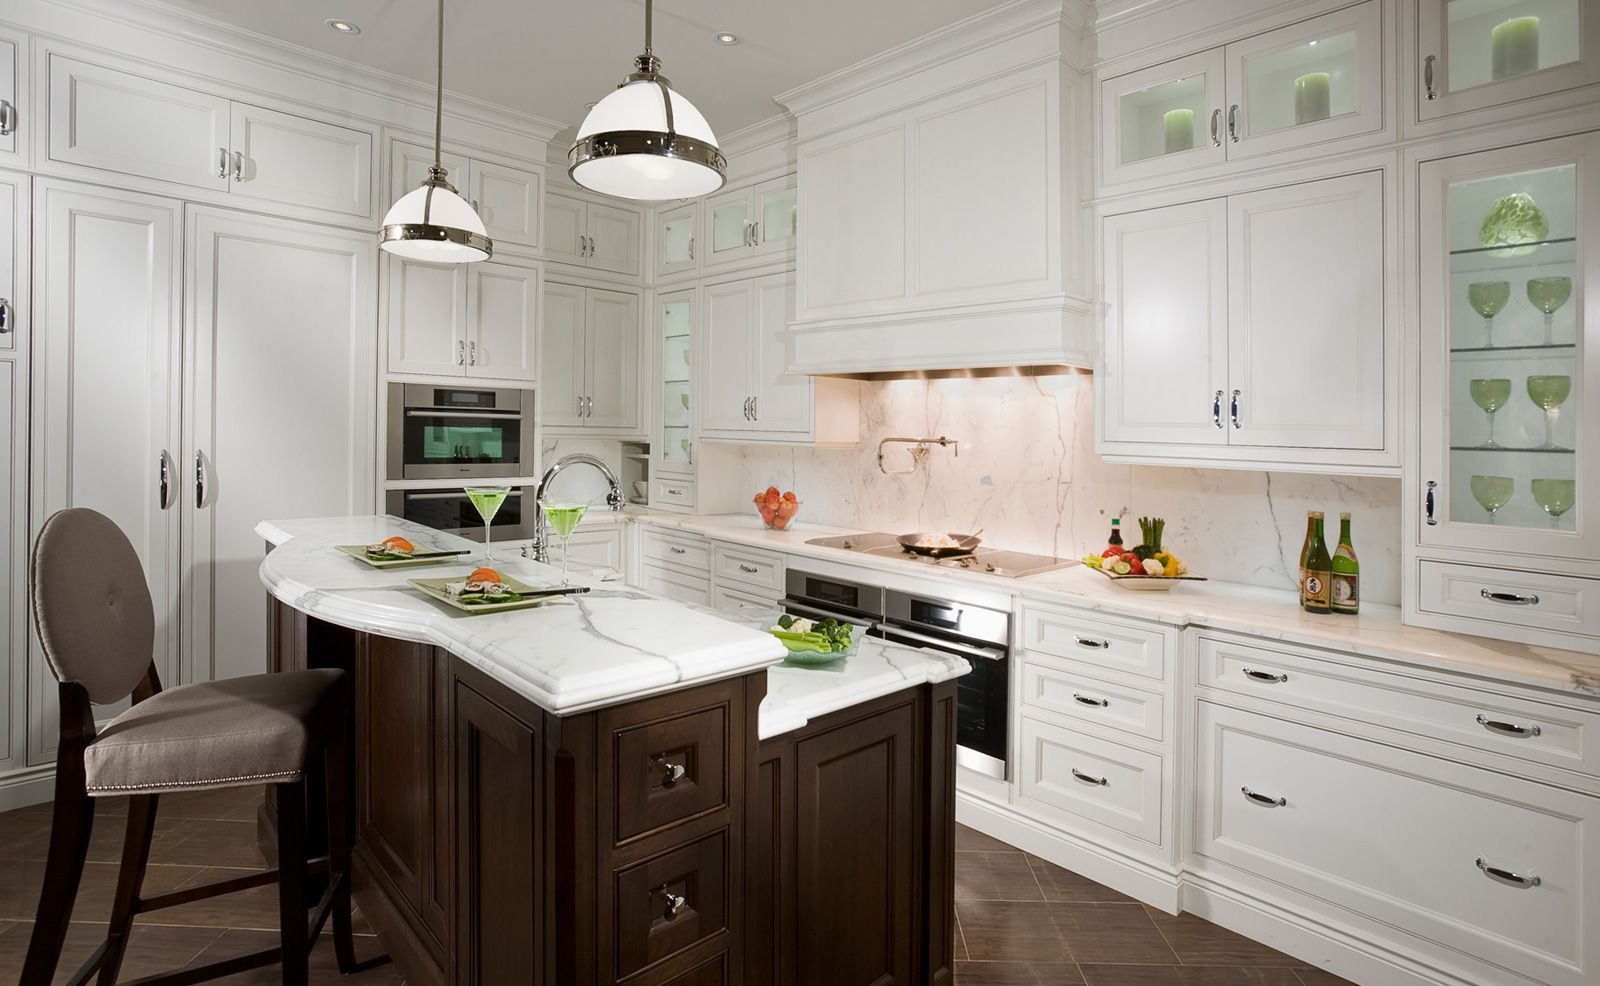 Traditional Gallery Kitchen Furnishings Traditional Kitchen Design Kitchen Inspirations